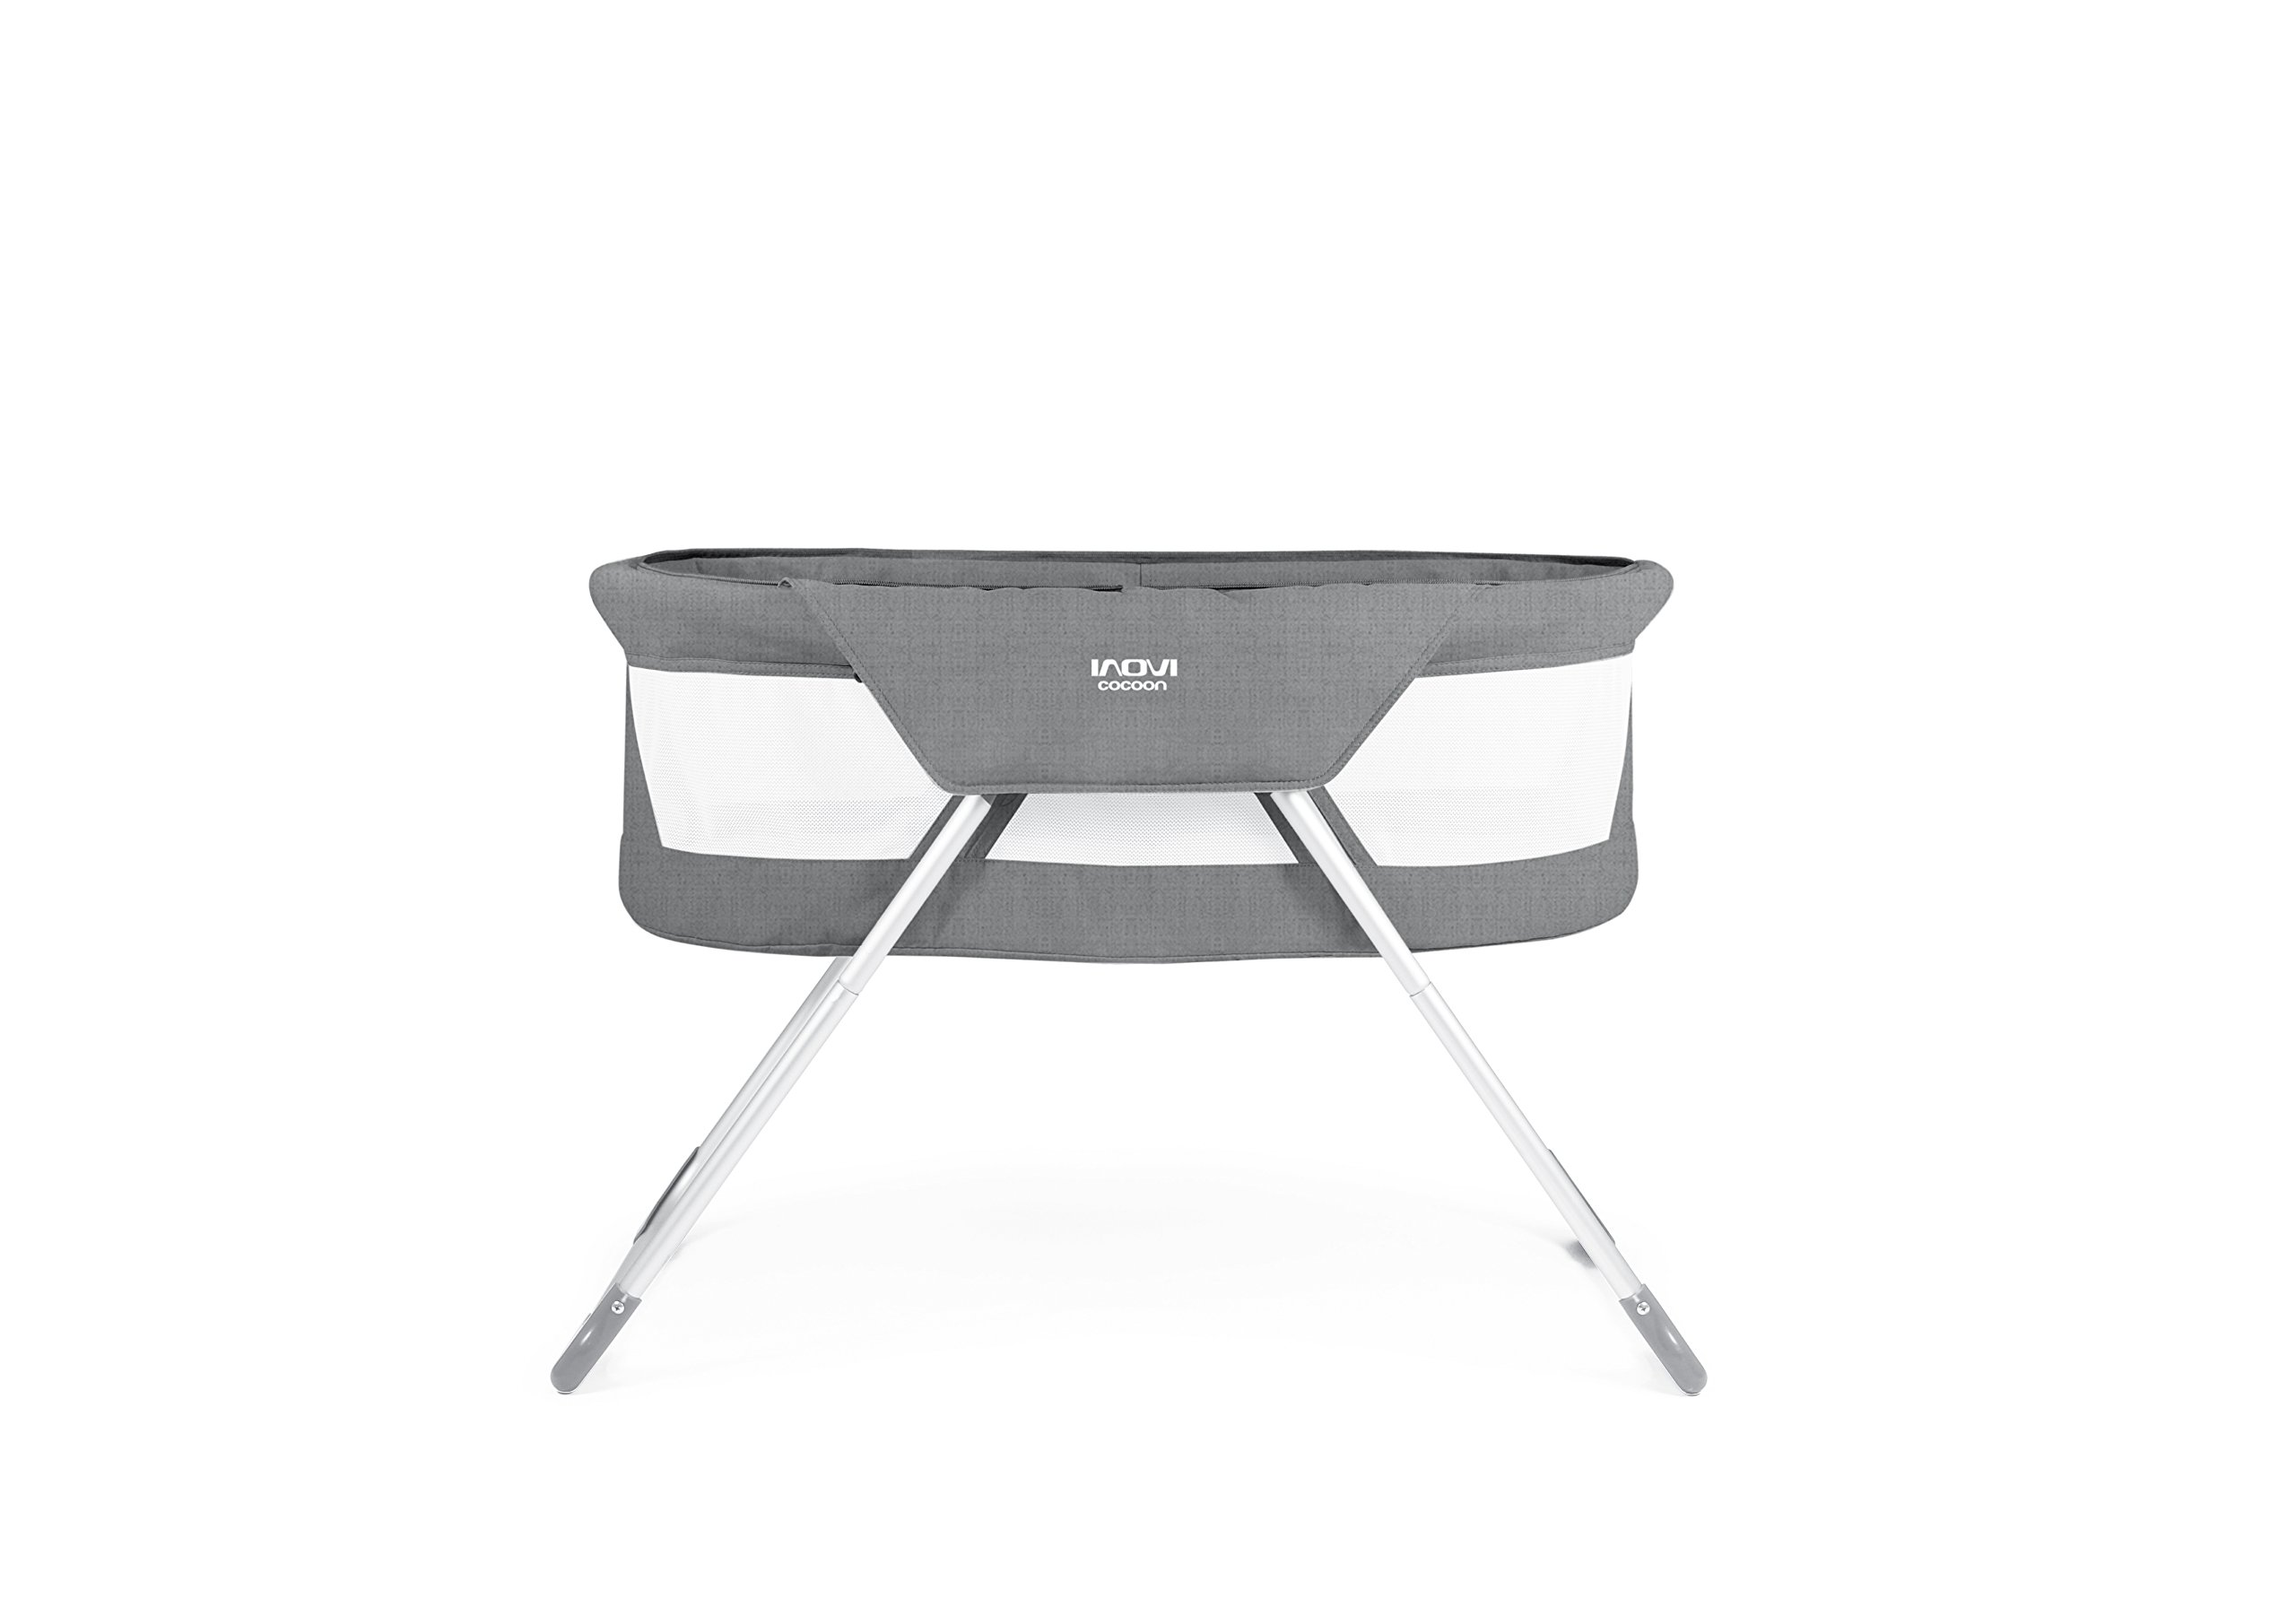 Inovi Cocoon Folding Moses Crib Travel Cot Grey Inovi Compact and lightweight for use at home or when travelling The Inovi Cocoon provides a safe andsecure sleeping environment for your baby. Suitable from birth up to approx. 6 months old 3